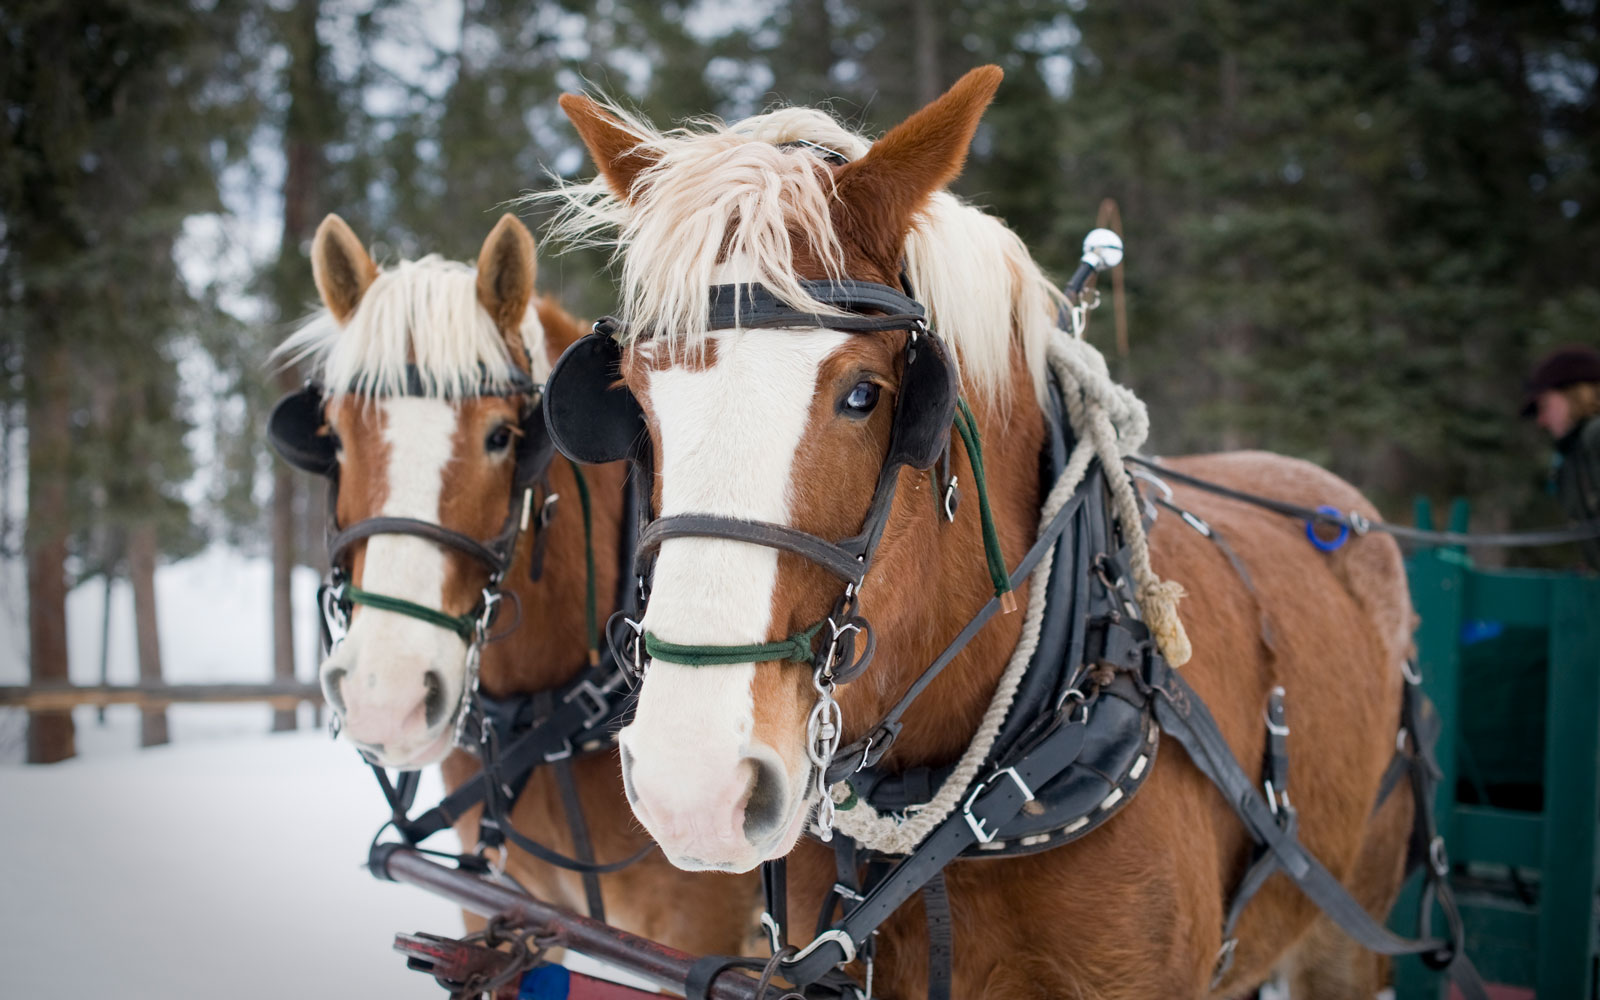 Two of the ranch's horses.